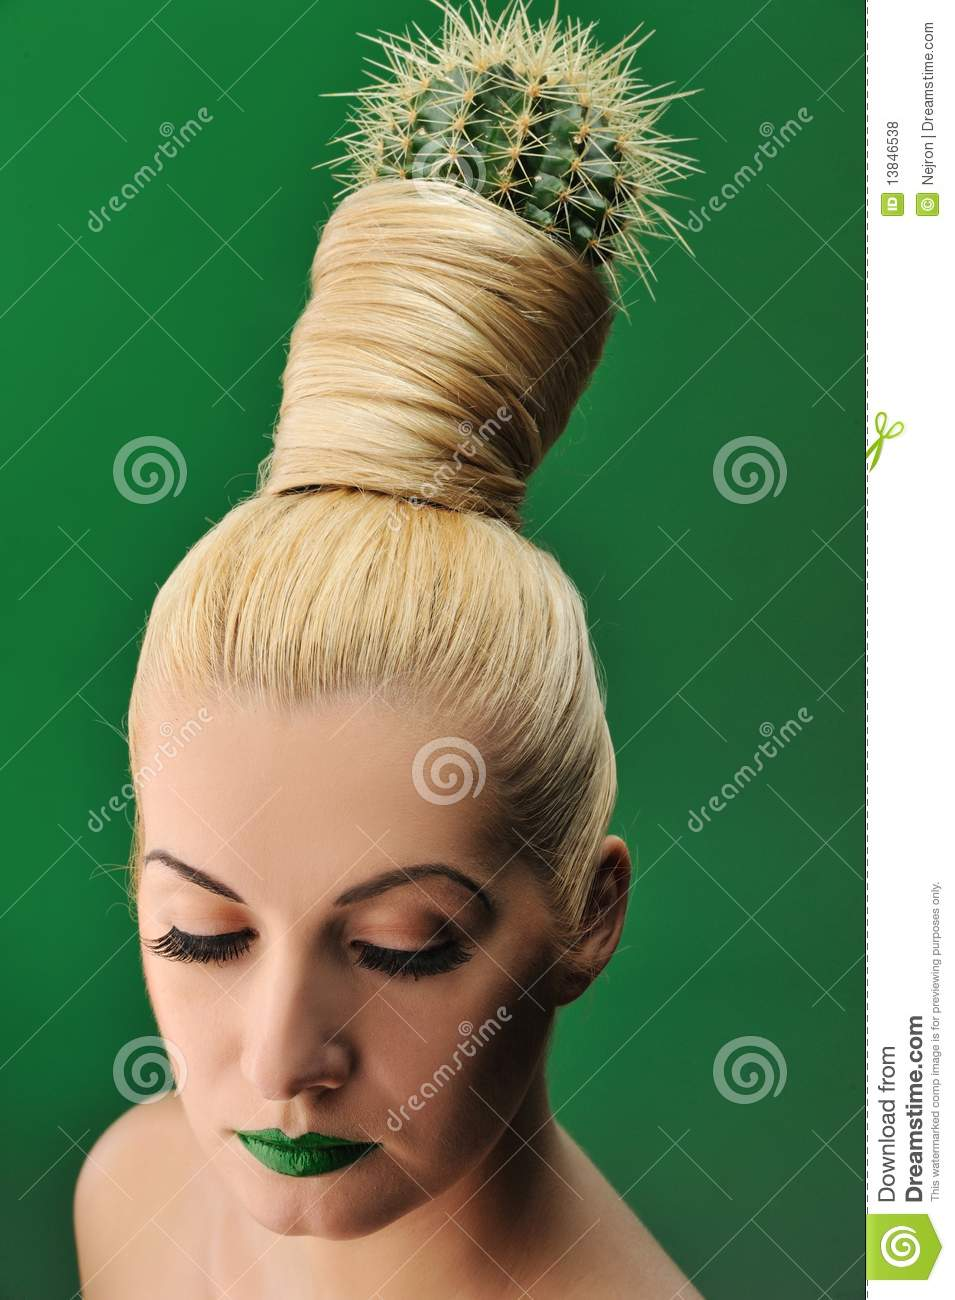 woman with cactus in her hair royalty free stock photos image 13846538. Black Bedroom Furniture Sets. Home Design Ideas